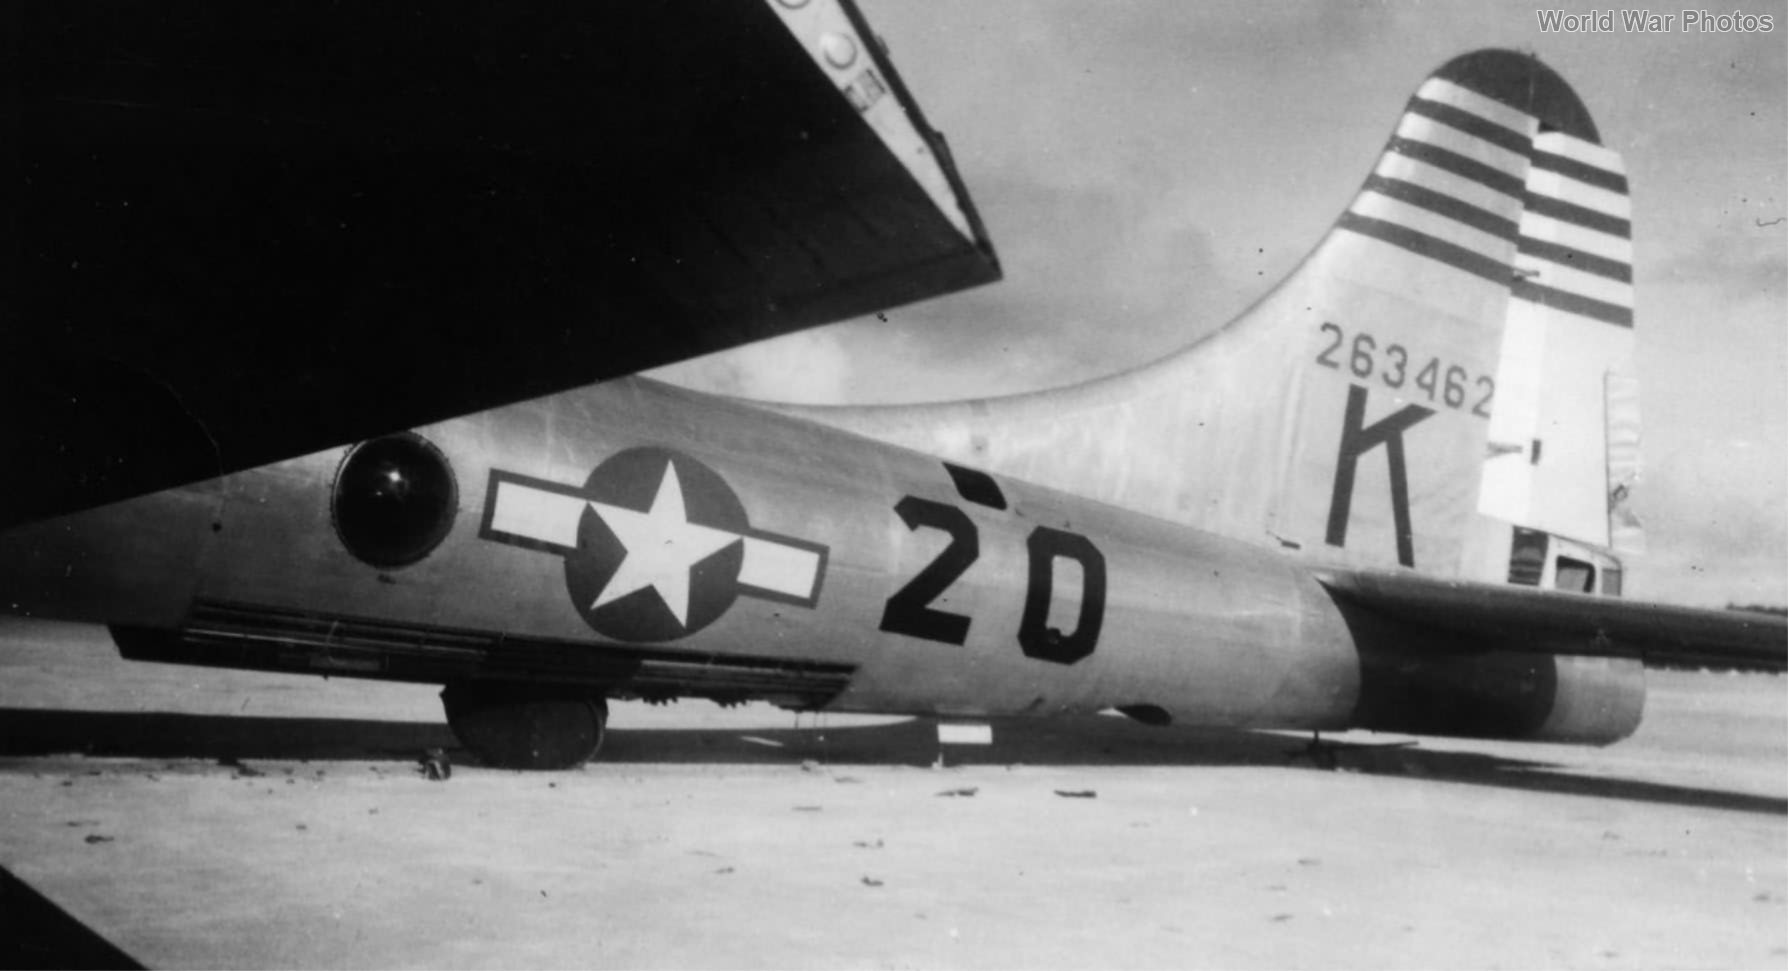 B-29 42-63462 of the 40th BG, 44th BS